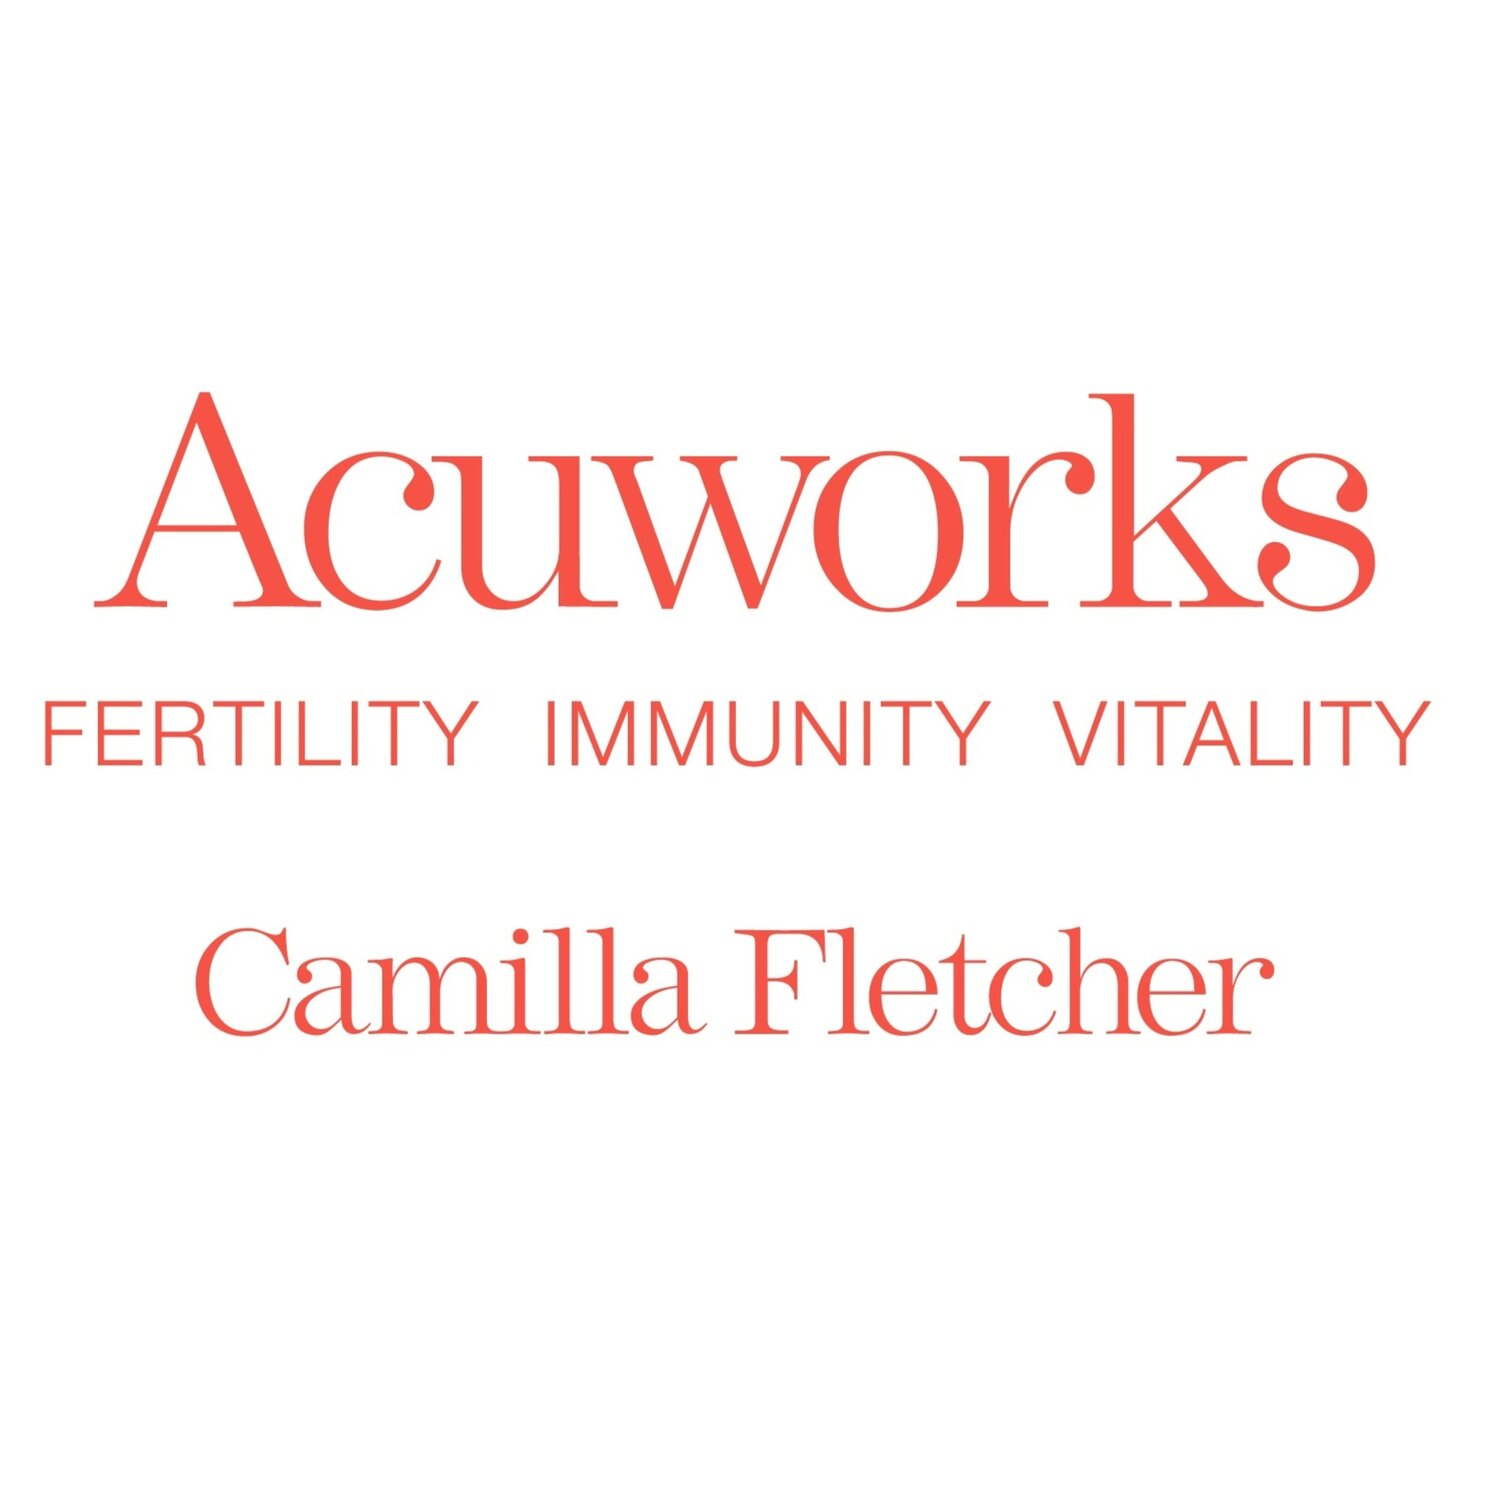 ACUWORKS